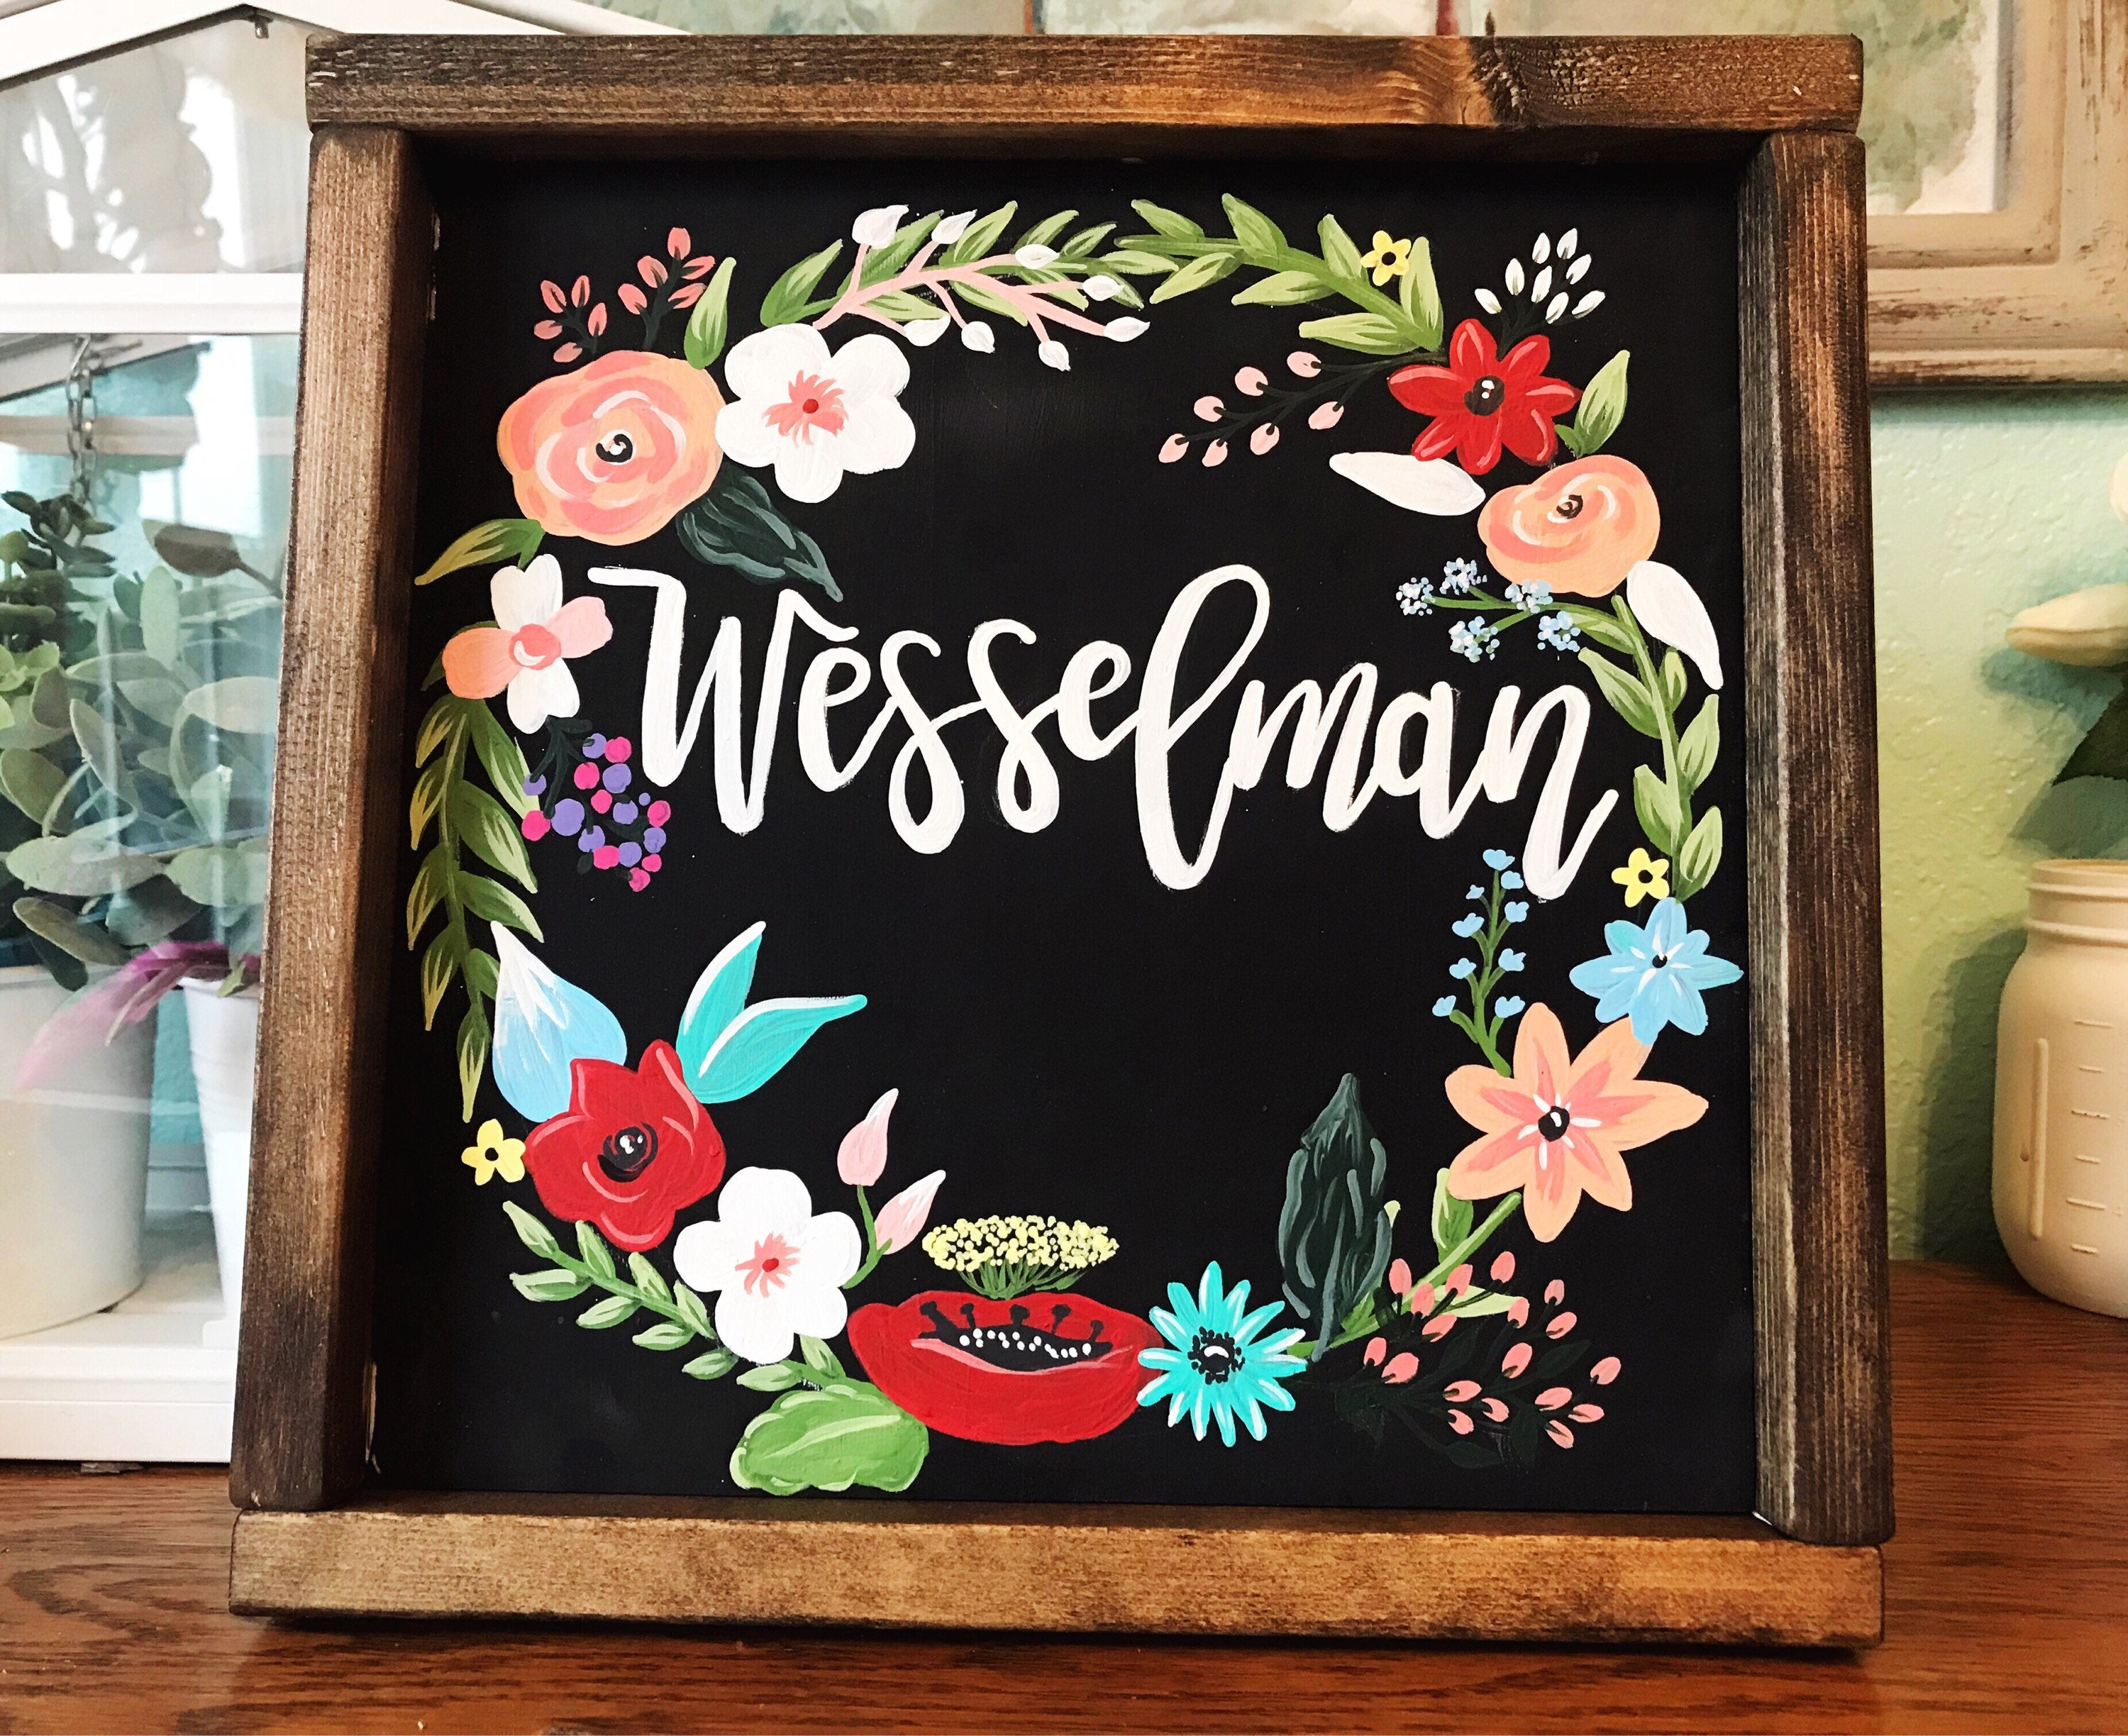 Hand Painted Wood Sign, Floral Wreath Sign, Floral Wall Decor, Hello Sign,  Hand Painted Flowers, Gallery Wall Sign, Last Name Sign with regard to Floral Wreath Wood Framed Wall Decor (Image 20 of 30)